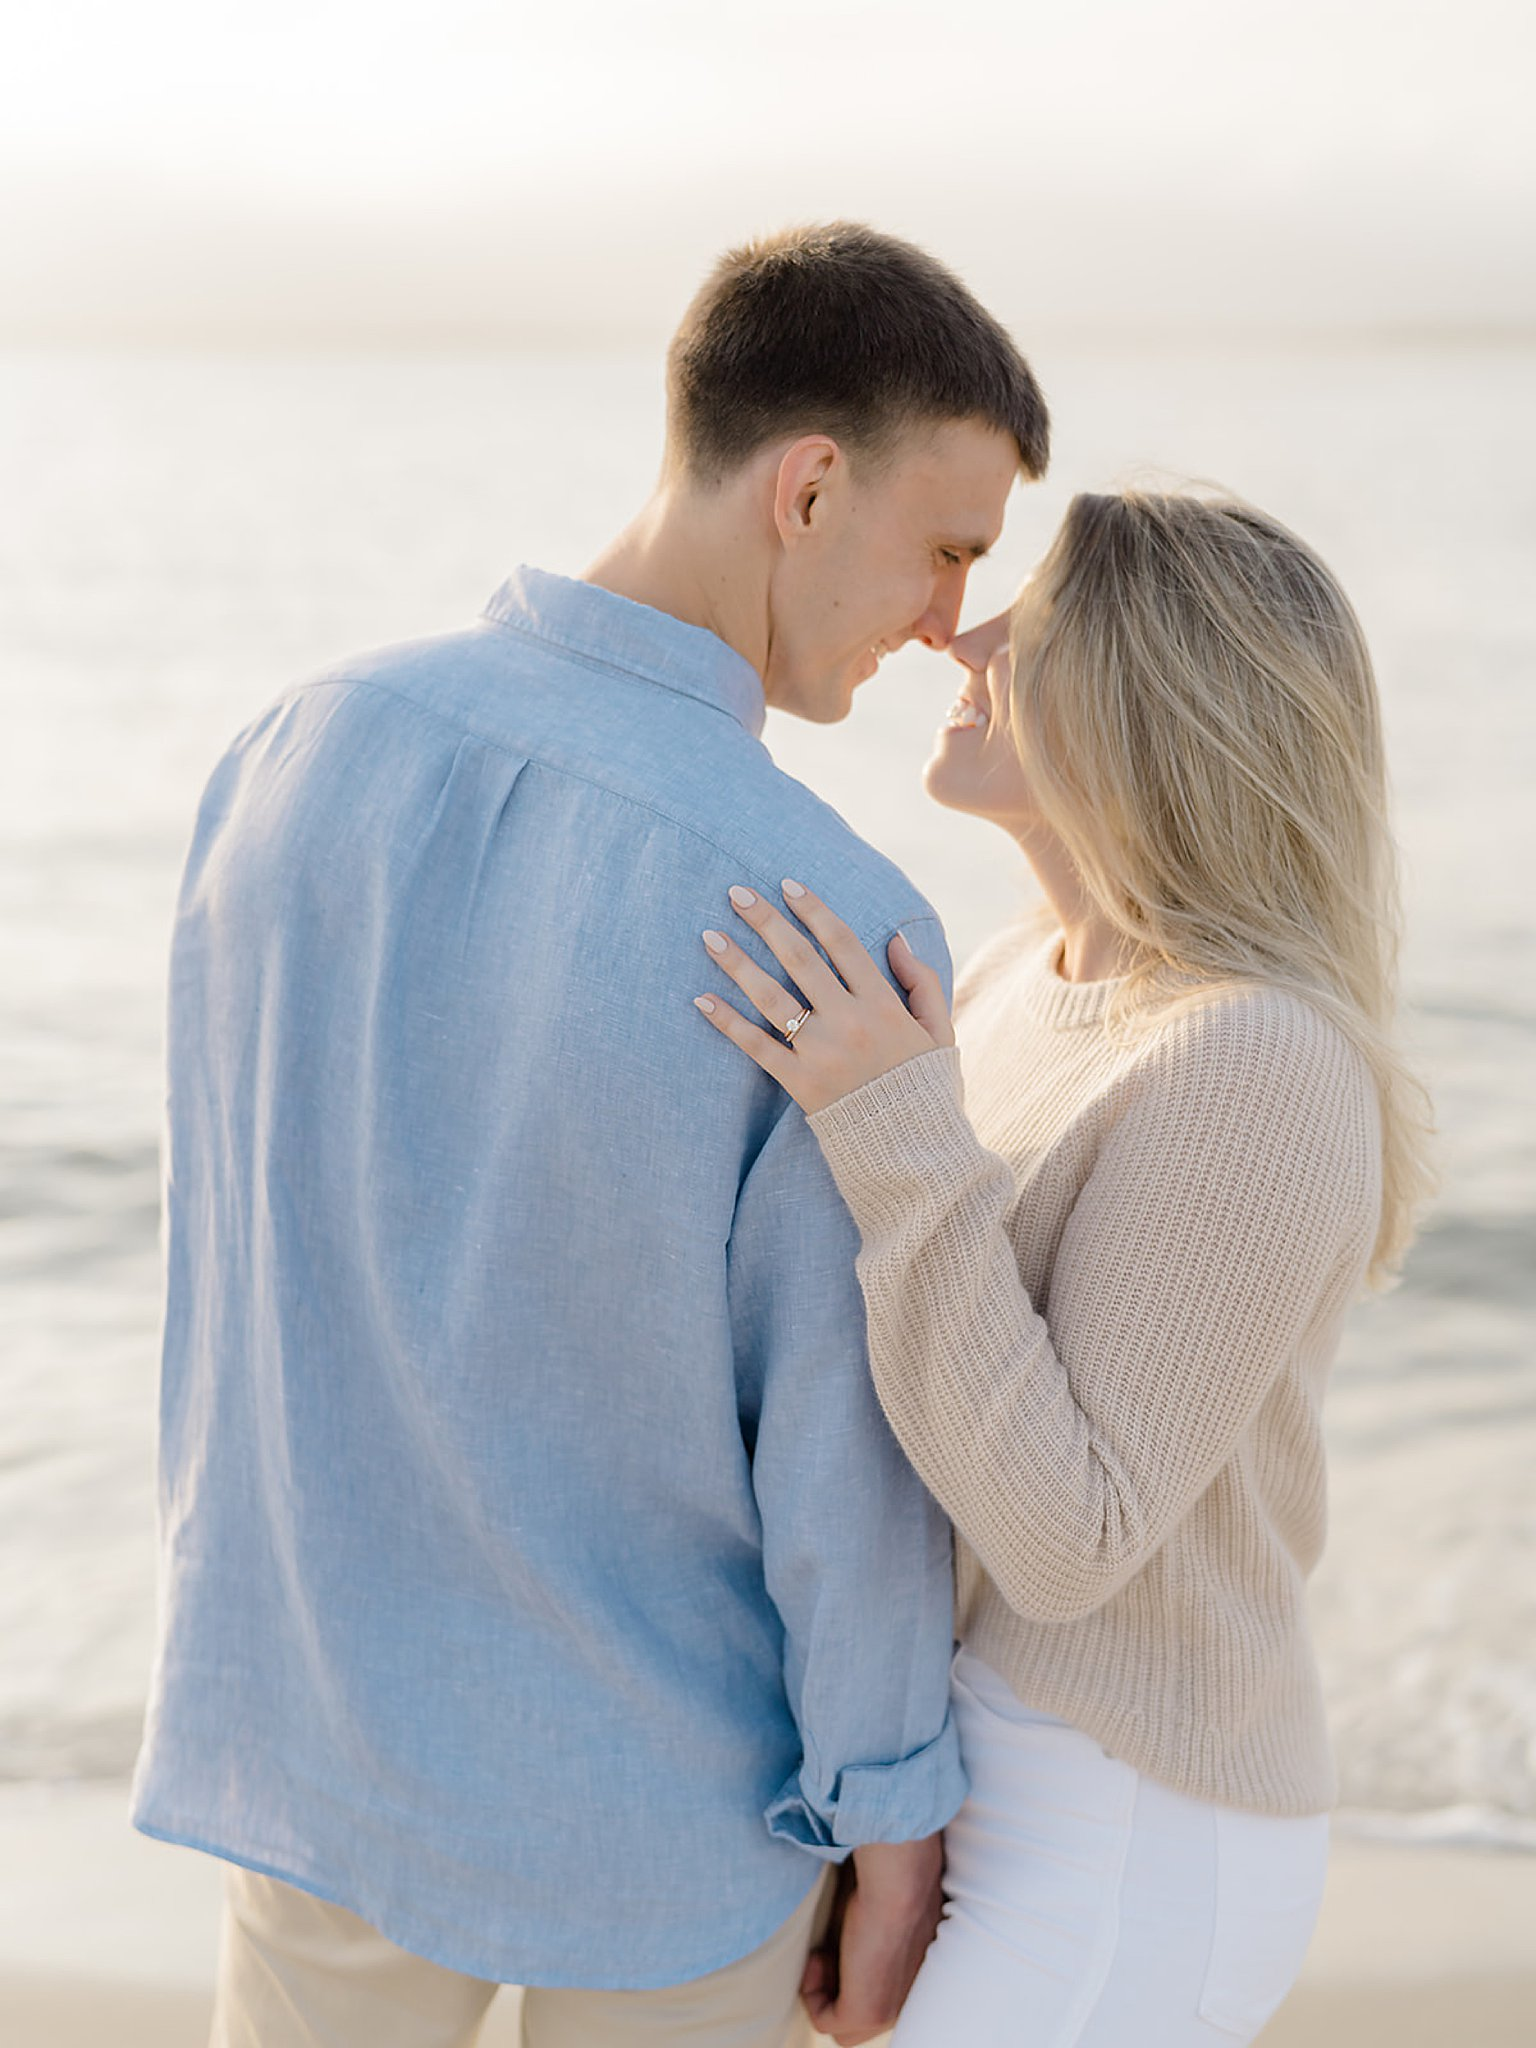 Ocean City New Jersey Engagement Session Photography by Magdalena Studios KateBrad 0055 1